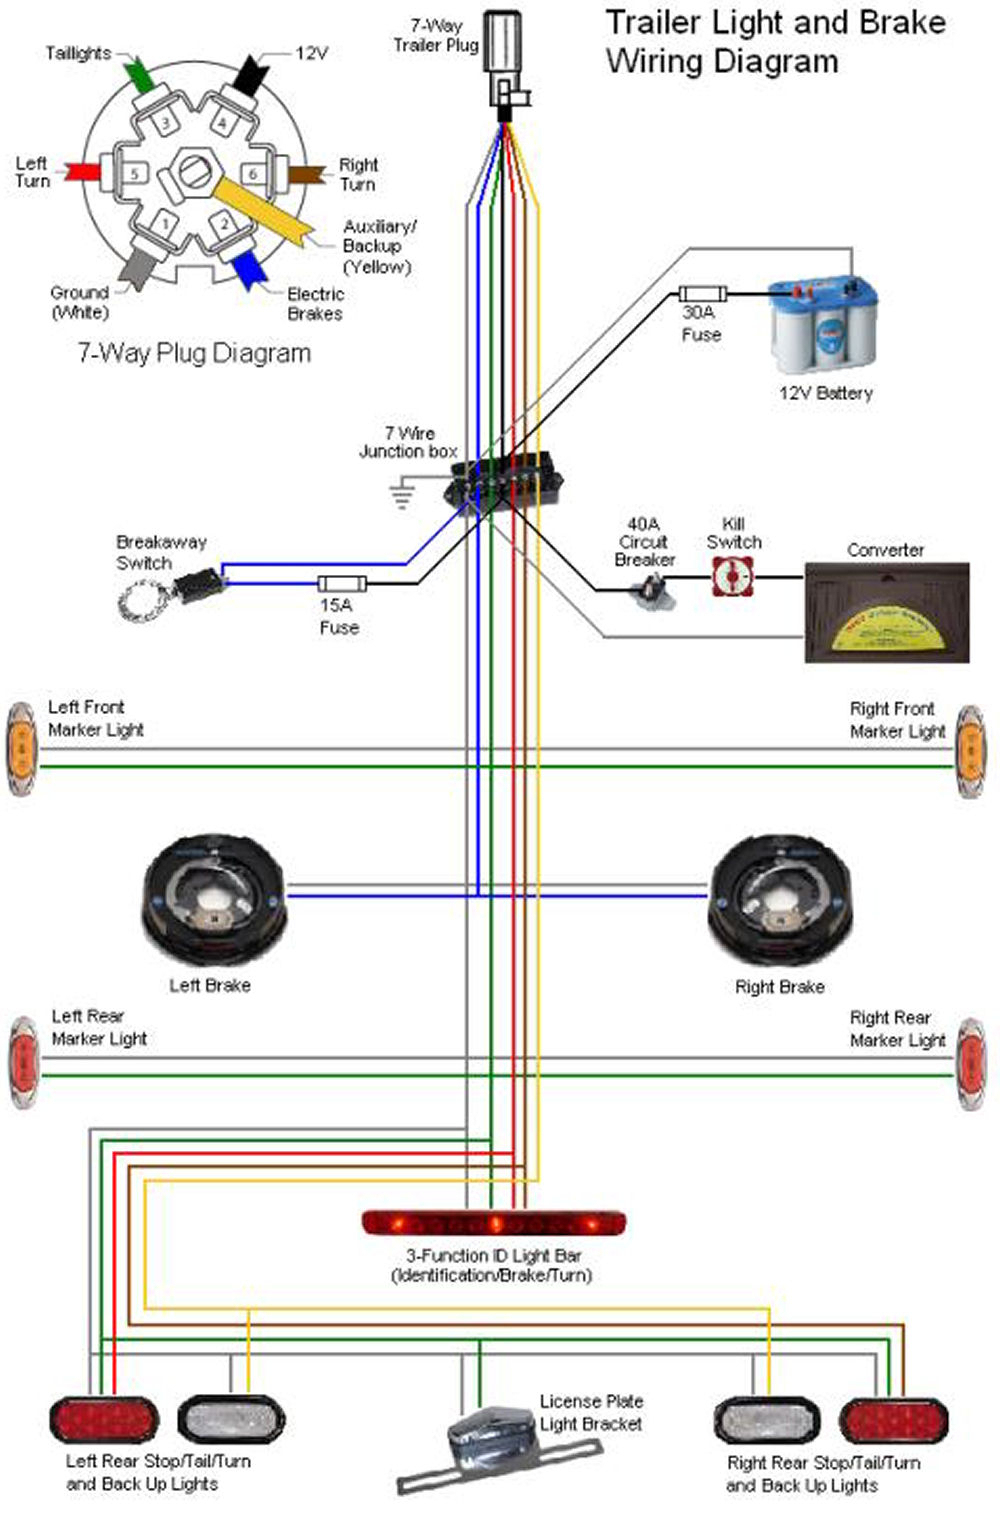 7 Way Trailer Plug Wiring Diagram | Wiring Library - Trailer Wiring Diagram 7 Way Break Away